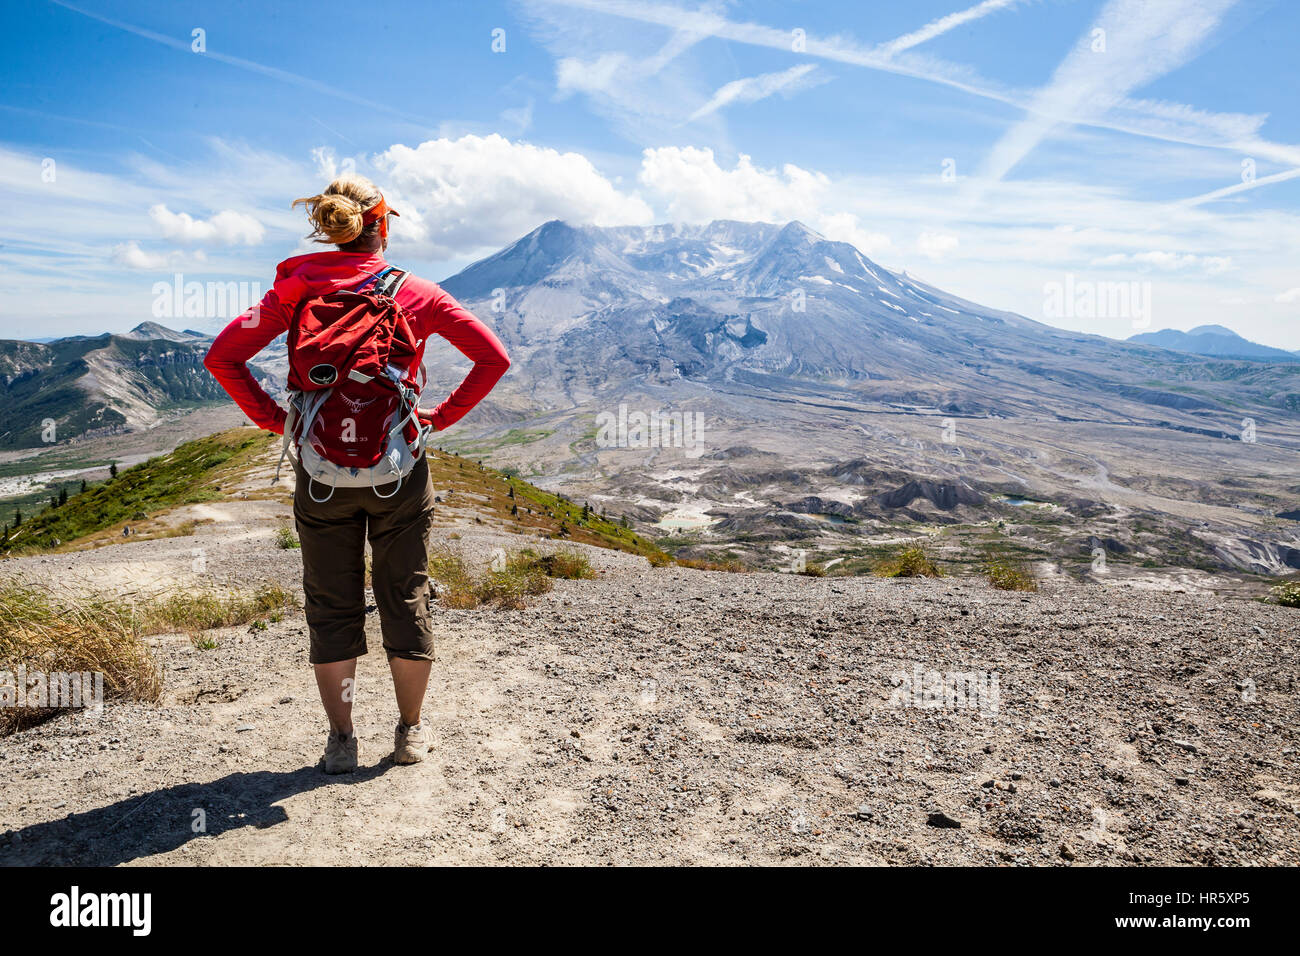 A woman hiking the Johnston Ridge  trail in Mount St Helens National Volcanic Monument, Washington, USA. - Stock Image